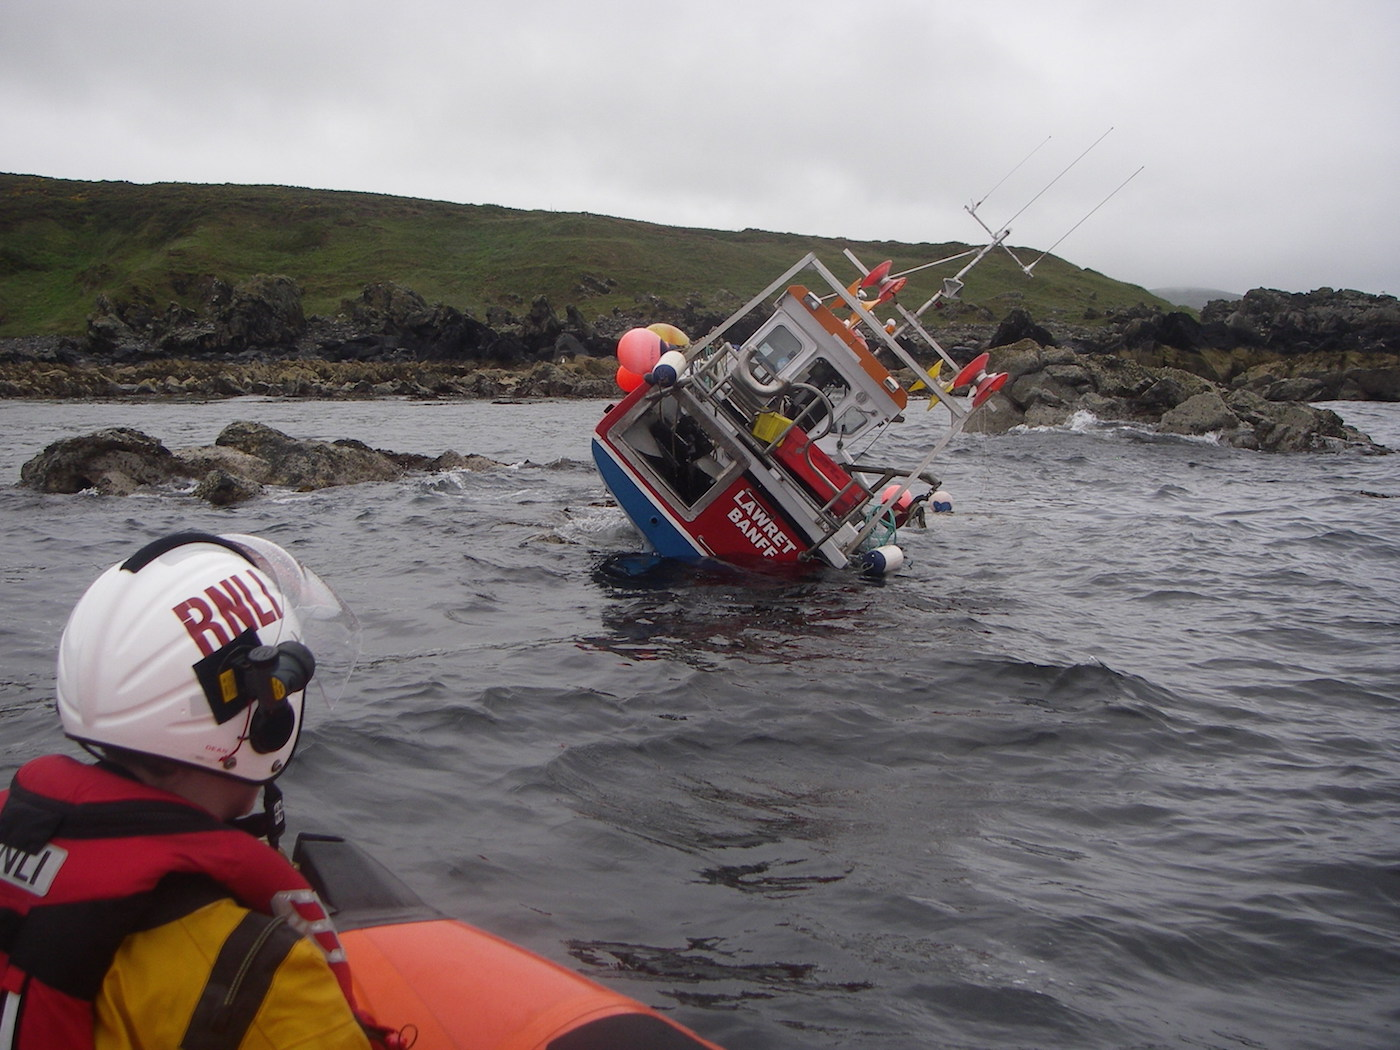 RNLI at work